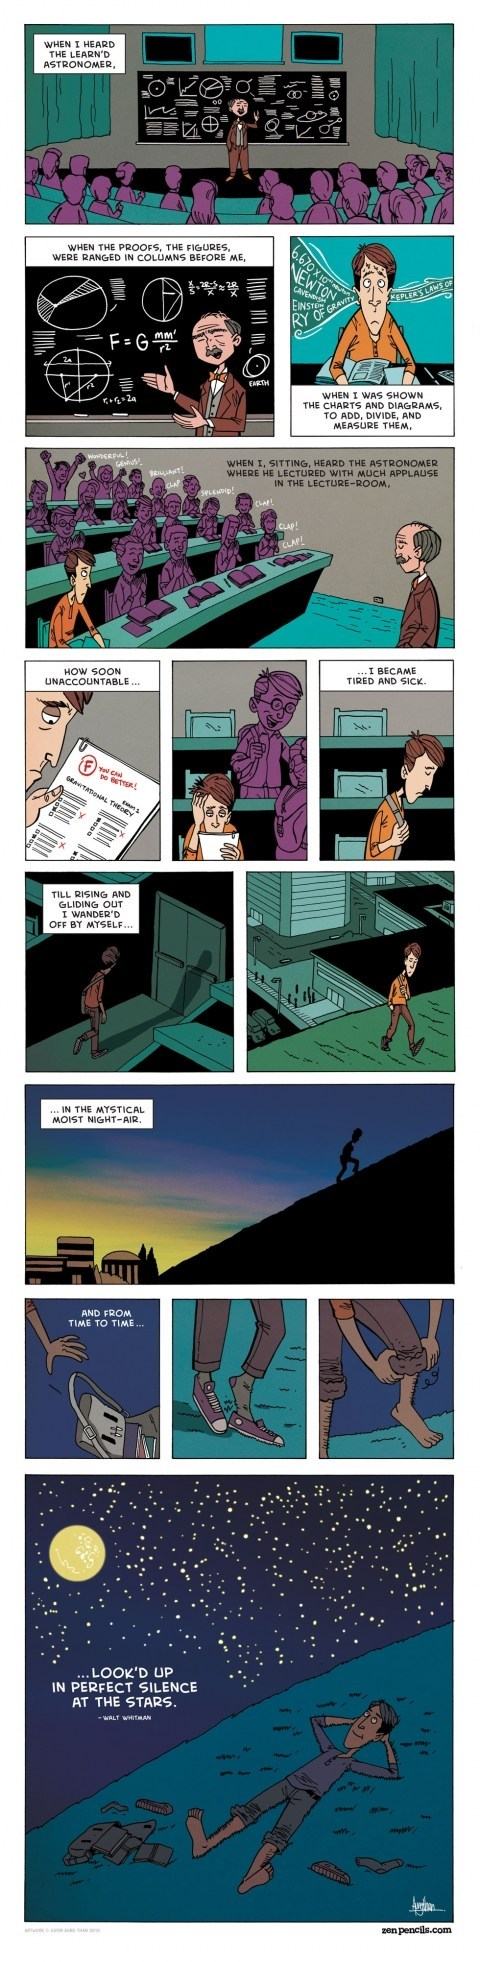 zen pencils class is in session walt whitman Astronomy poetry - 6675374080